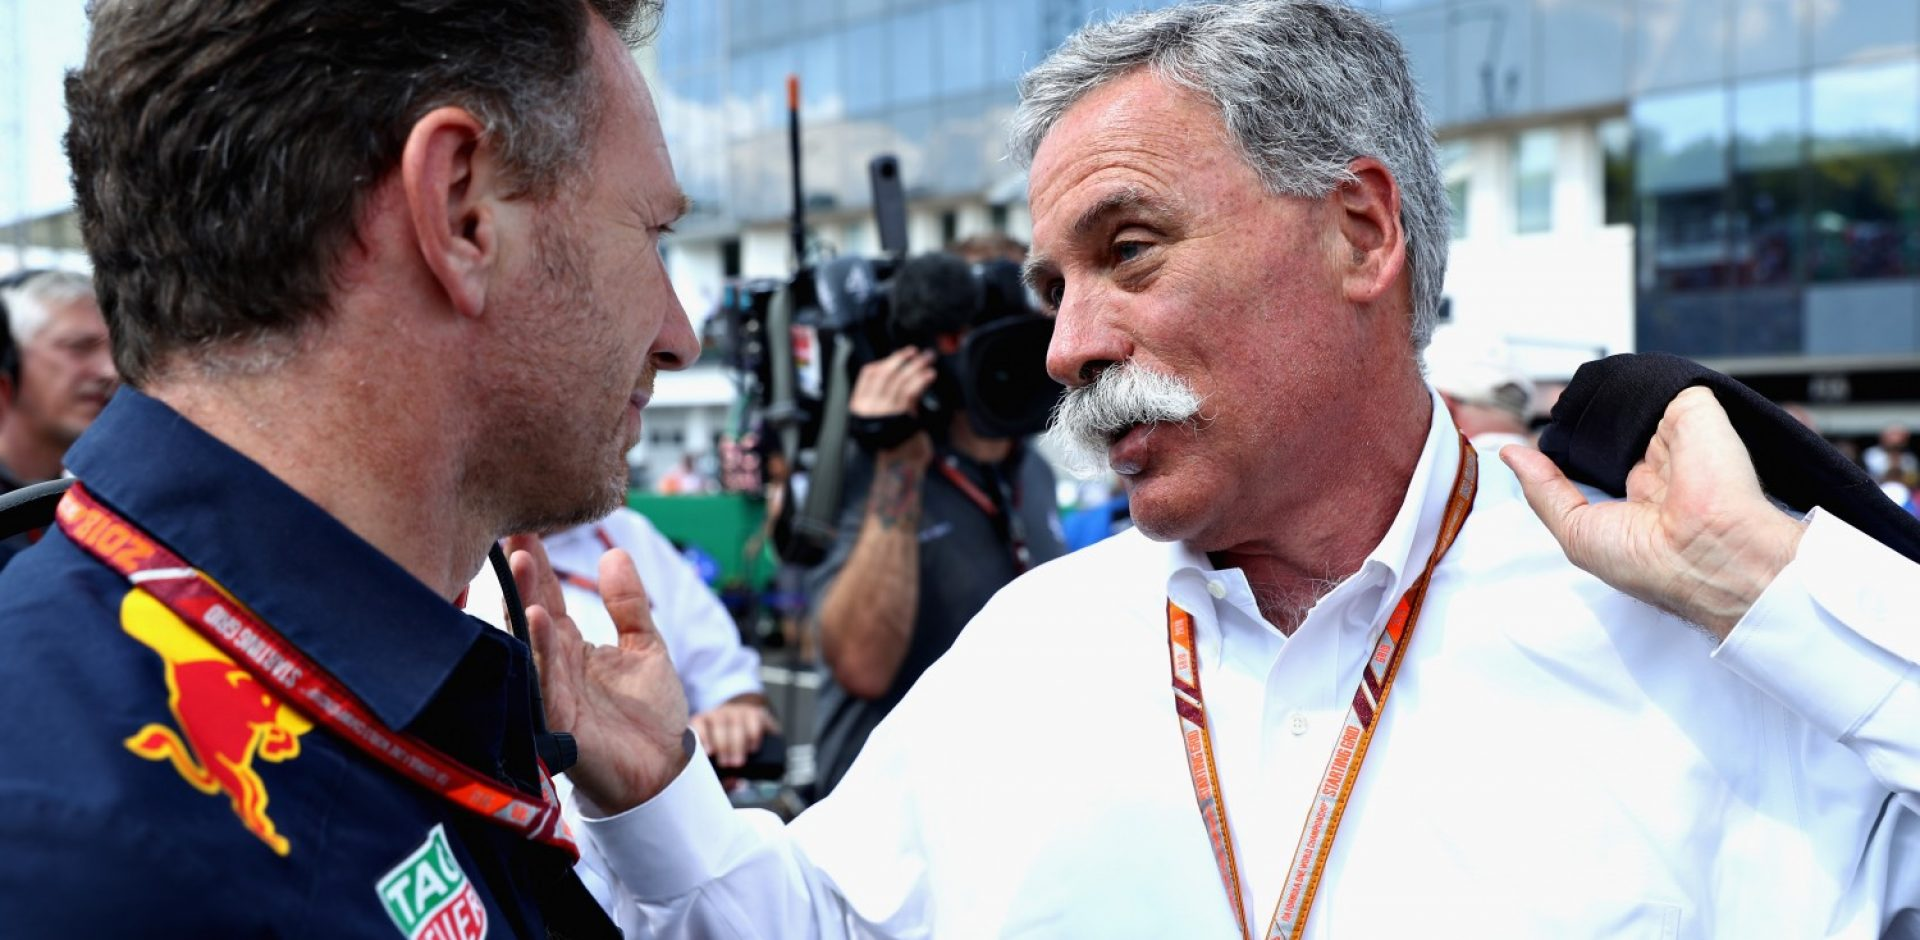 BUDAPEST, HUNGARY - JULY 29: Red Bull Racing Team Principal Christian Horner talks with Chase Carey, CEO and Executive Chairman of the Formula One Group, on the grid before the Formula One Grand Prix of Hungary at Hungaroring on July 29, 2018 in Budapest, Hungary.  (Photo by Mark Thompson/Getty Images)